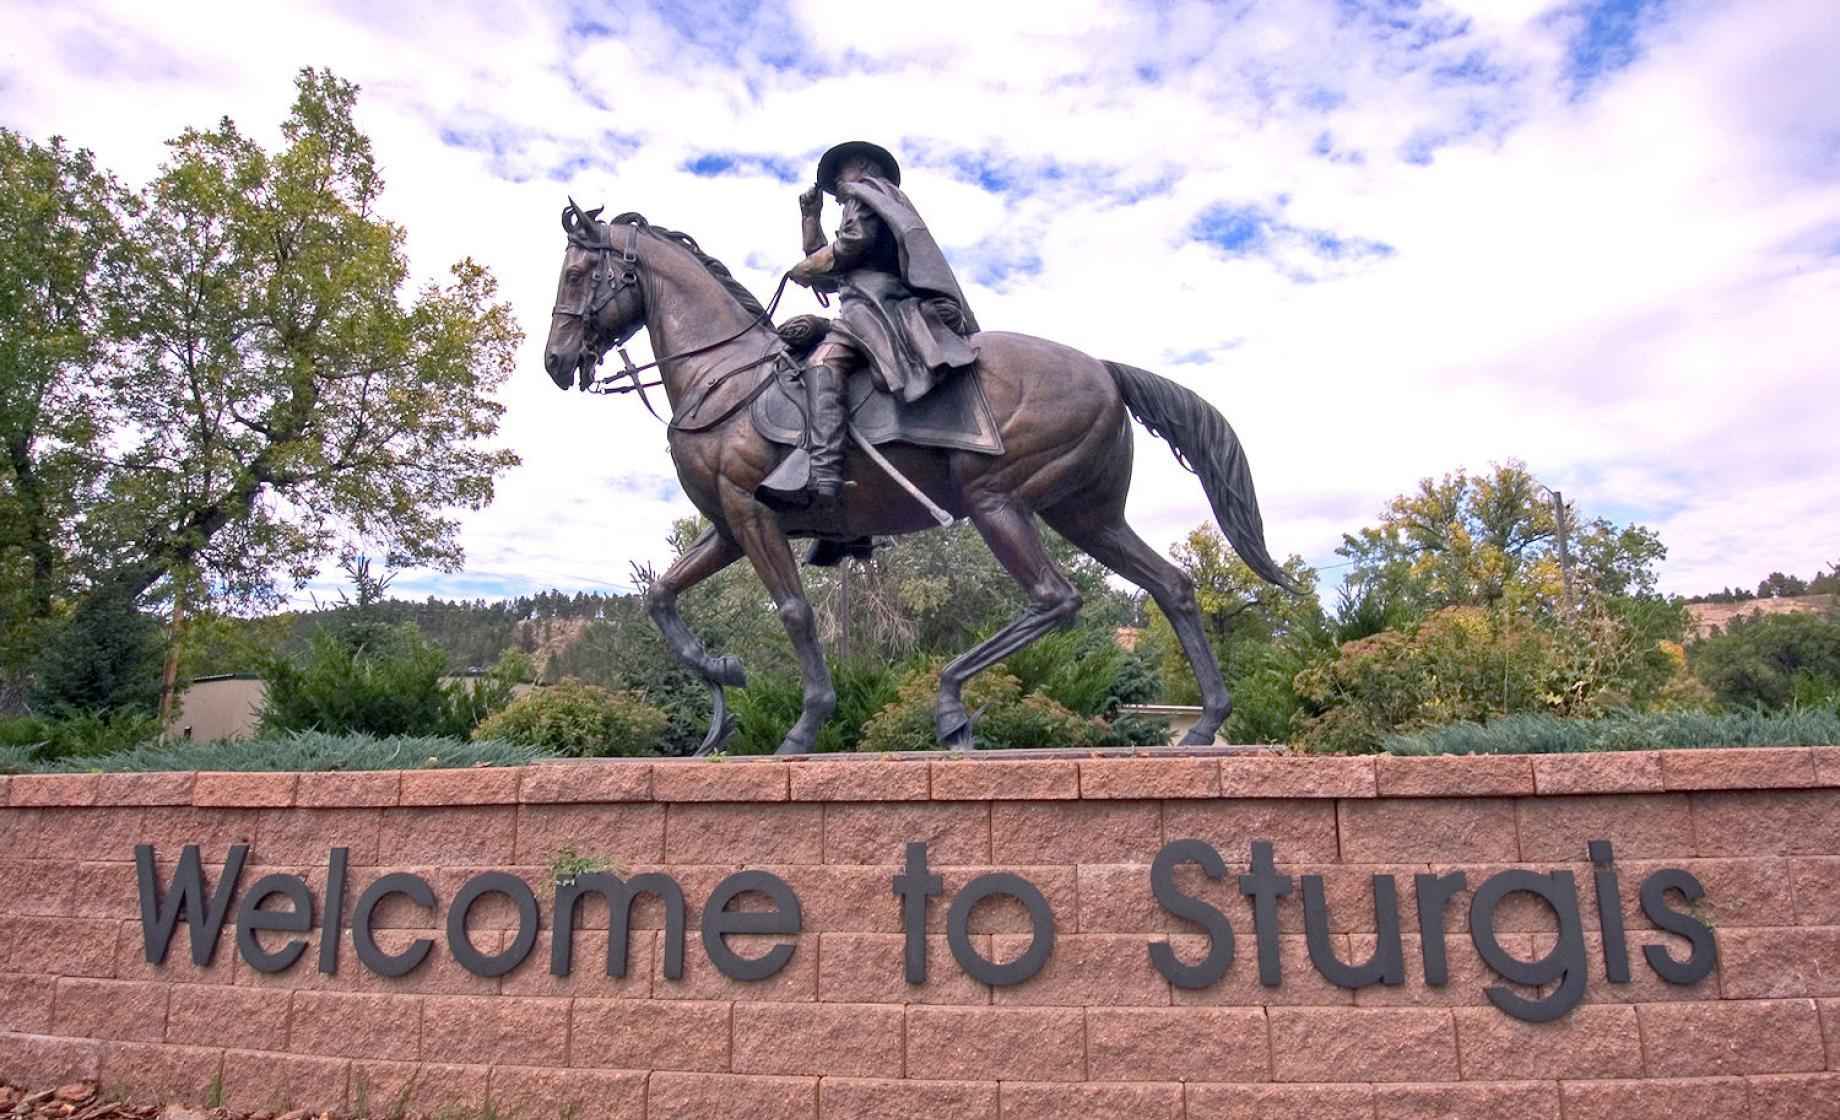 Welcome to Sturgis